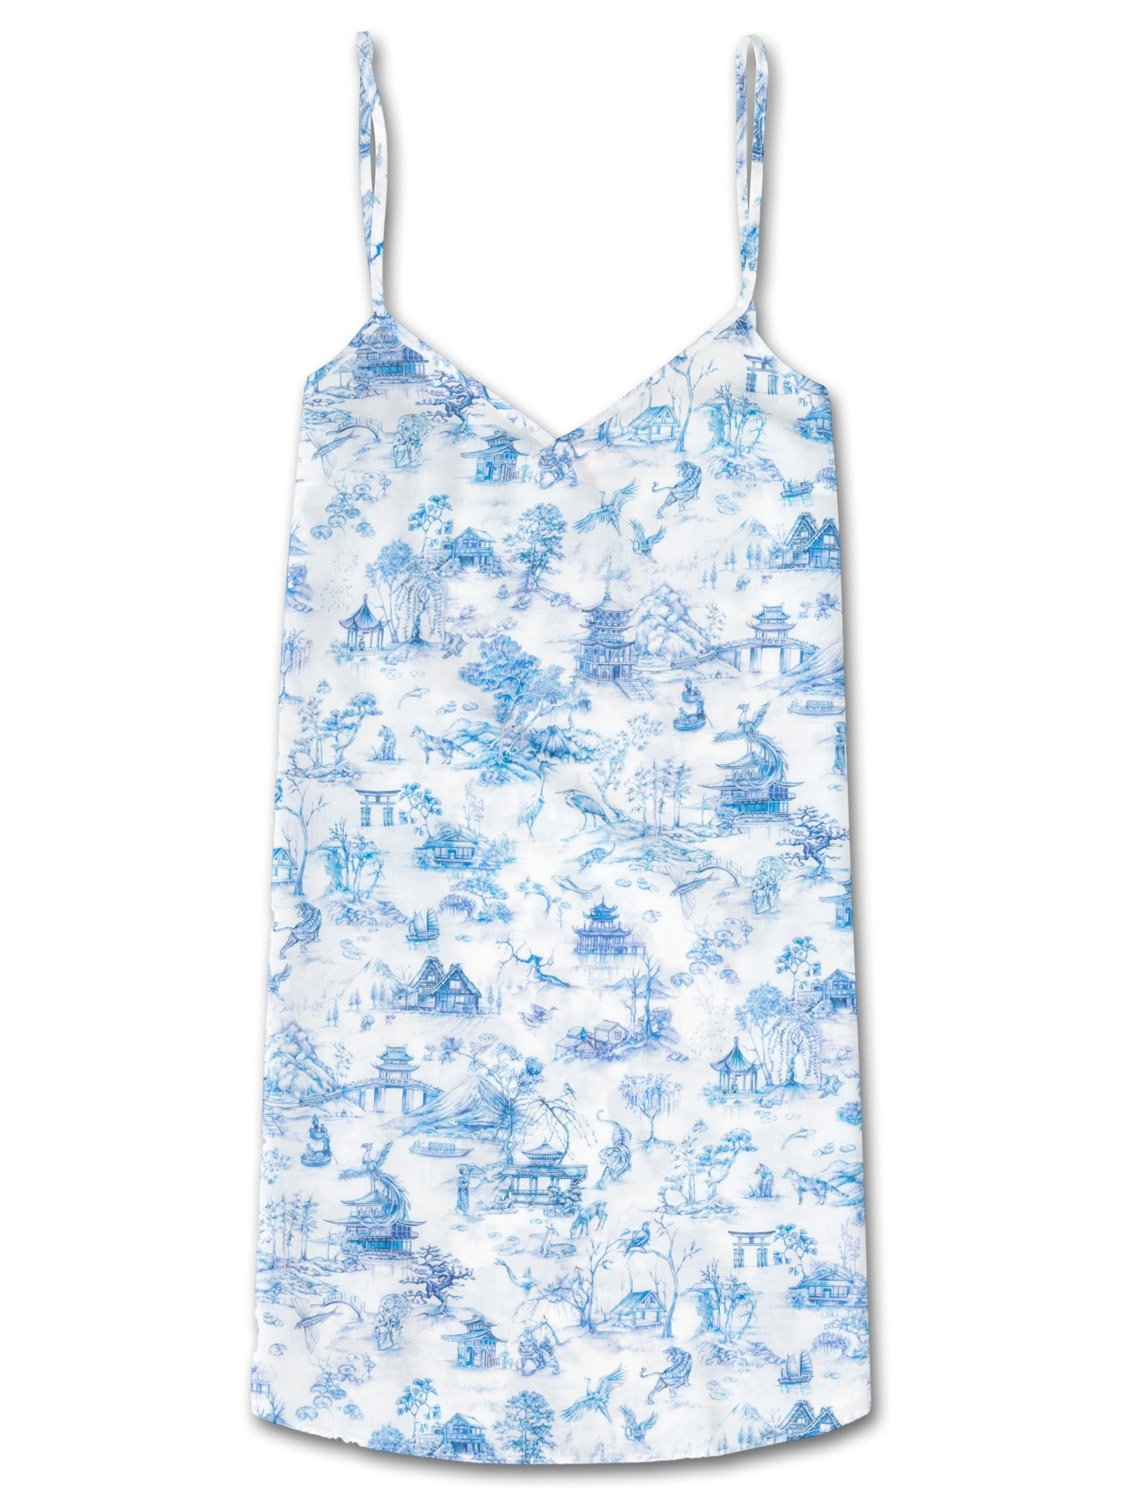 Women's Chemise Ledbury 11 Cotton Batiste Blue